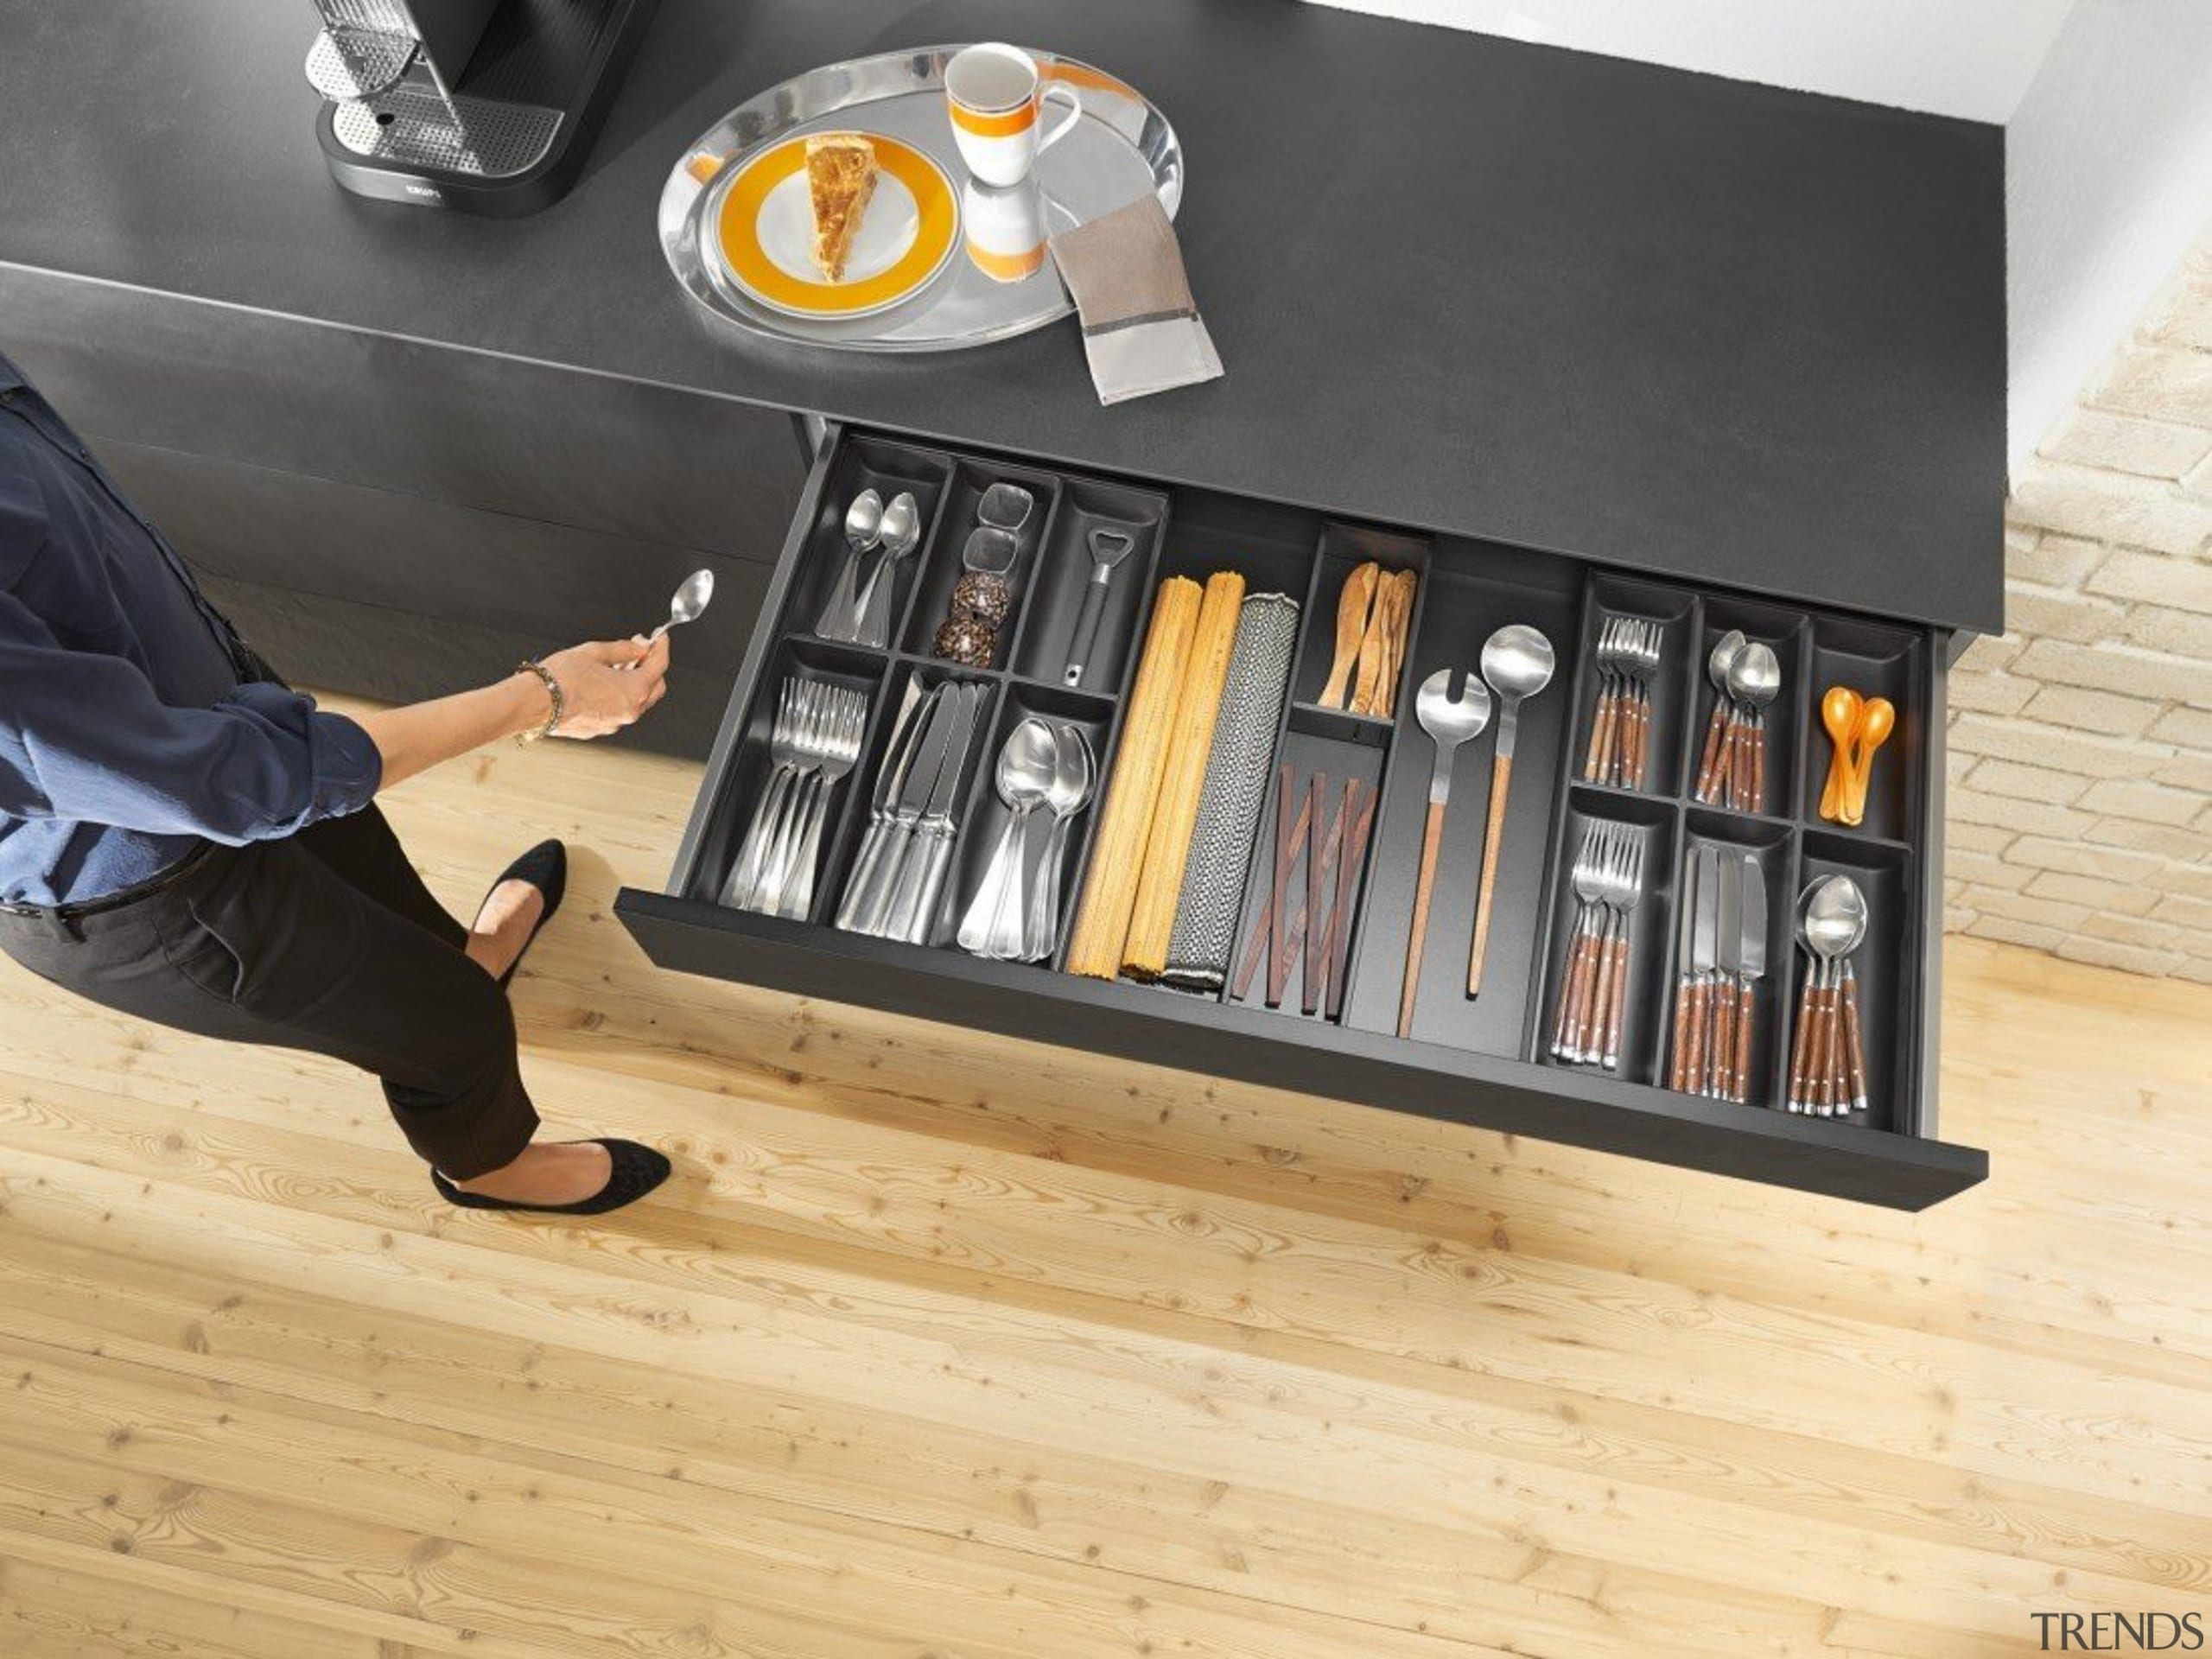 AMBIA-LINE inner dividing system – organization at its floor, flooring, furniture, product, product design, shelf, shelving, table, wood, orange, black